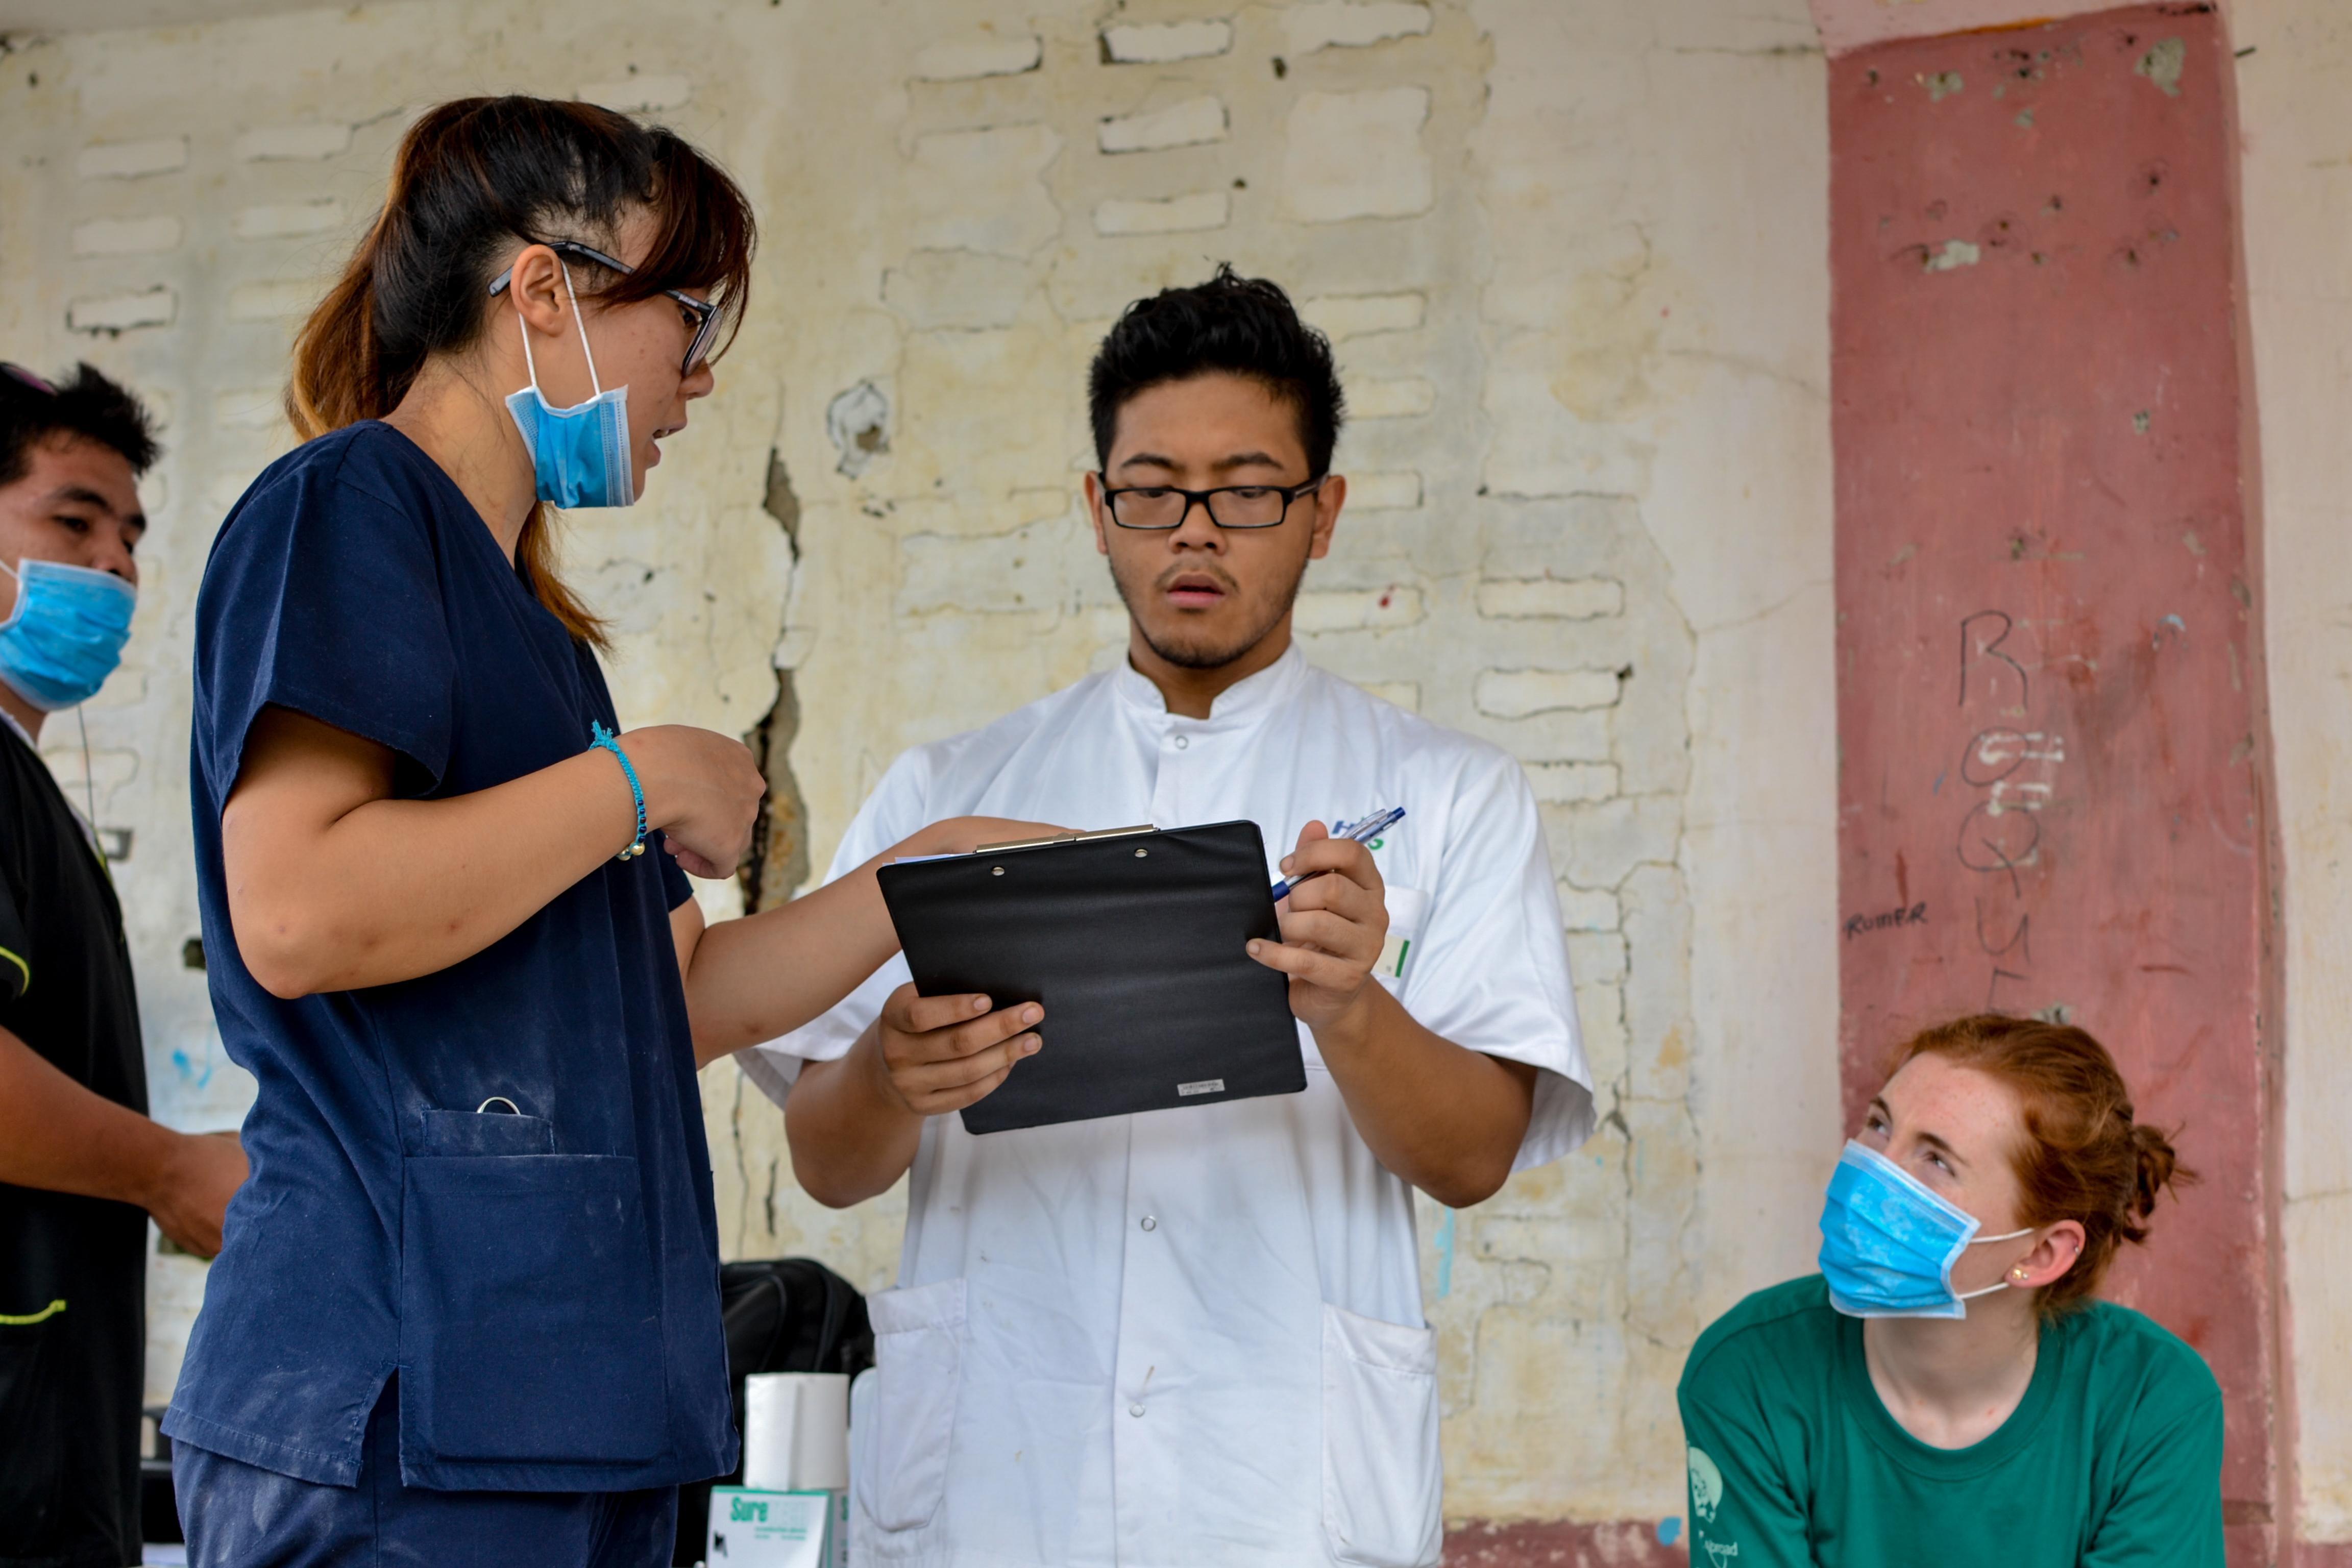 Interns pictured working together with local doctors during their medical internship in the Phillippines with Projects Abroad.